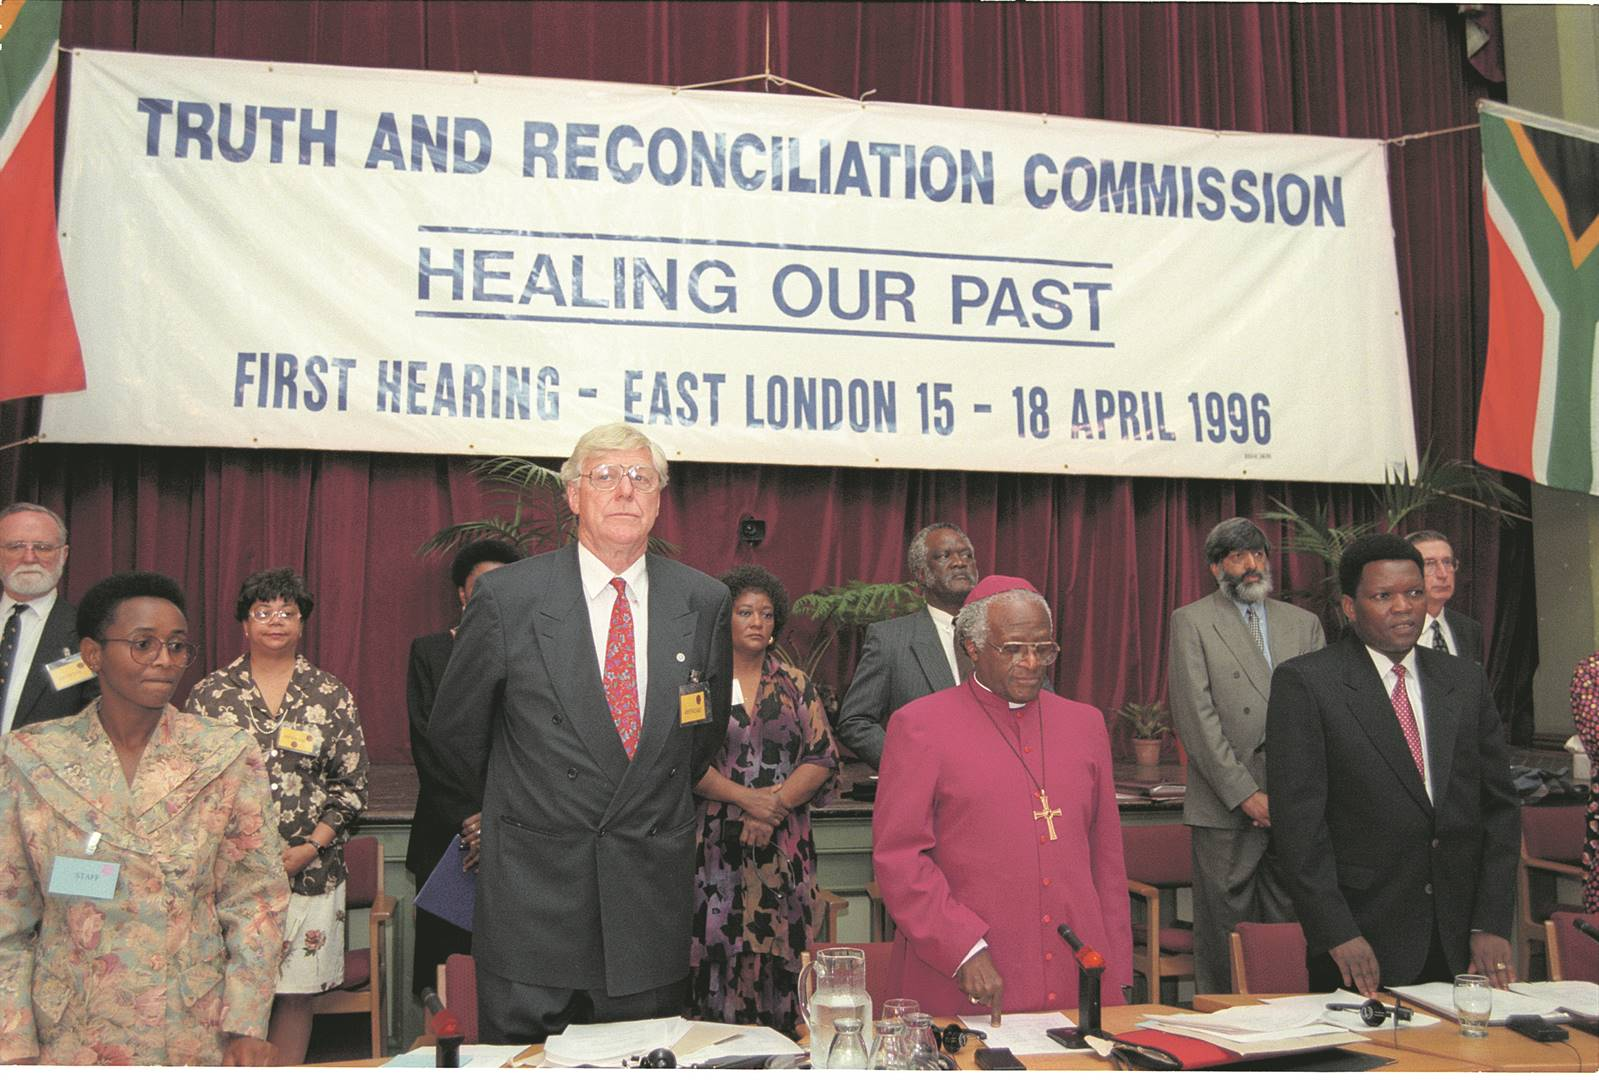 Restorative justice? Archbishop Desmond Tutu, chairperson of the Truth and Reconciliation Commission, at the commission's first hearing in East London in 1996PHOTO: Oryx Media Archive / Gallo Images